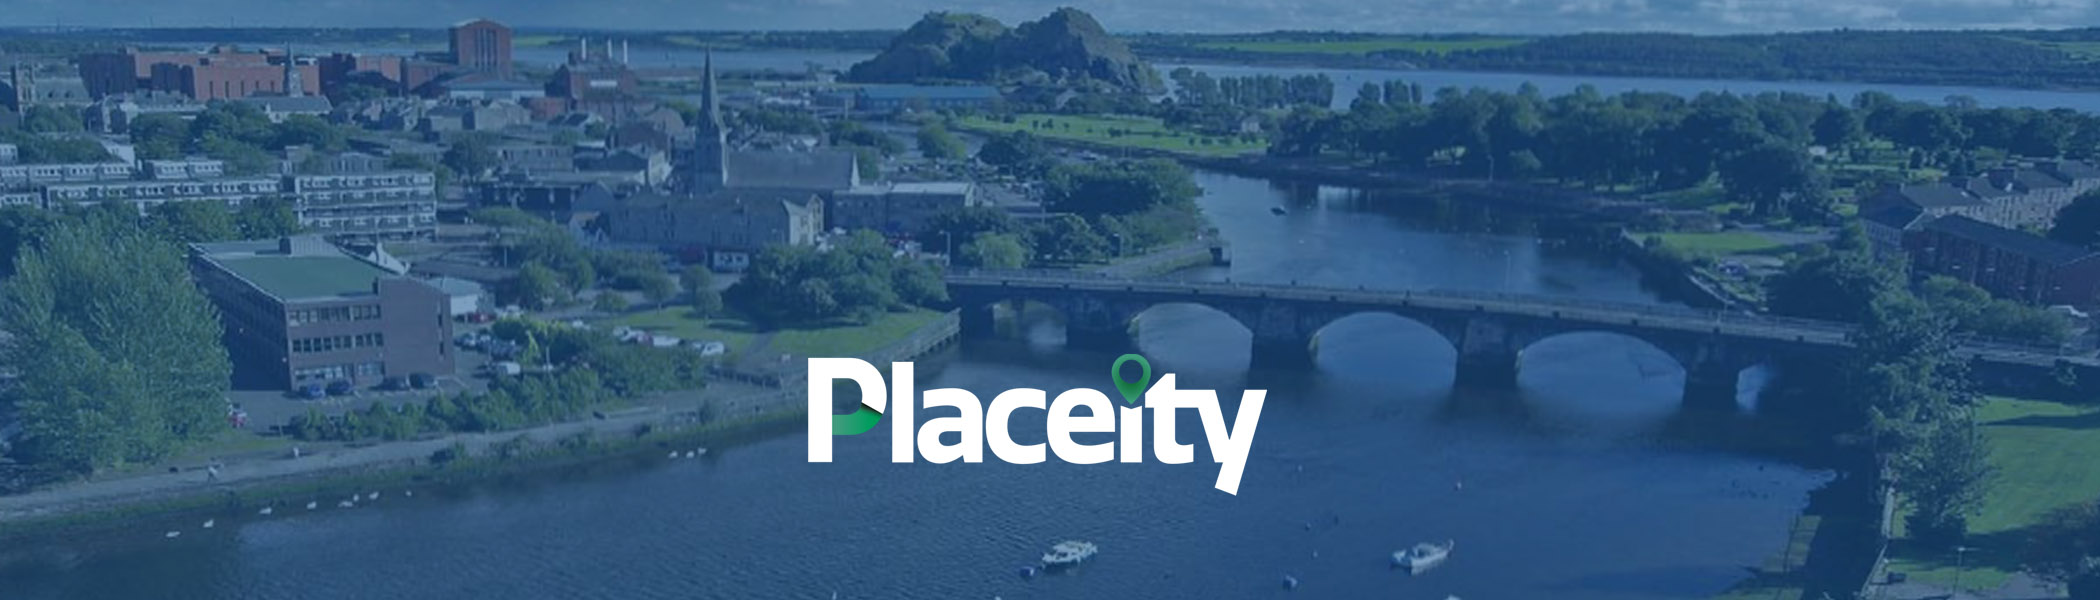 Placeity to deliver place platforms